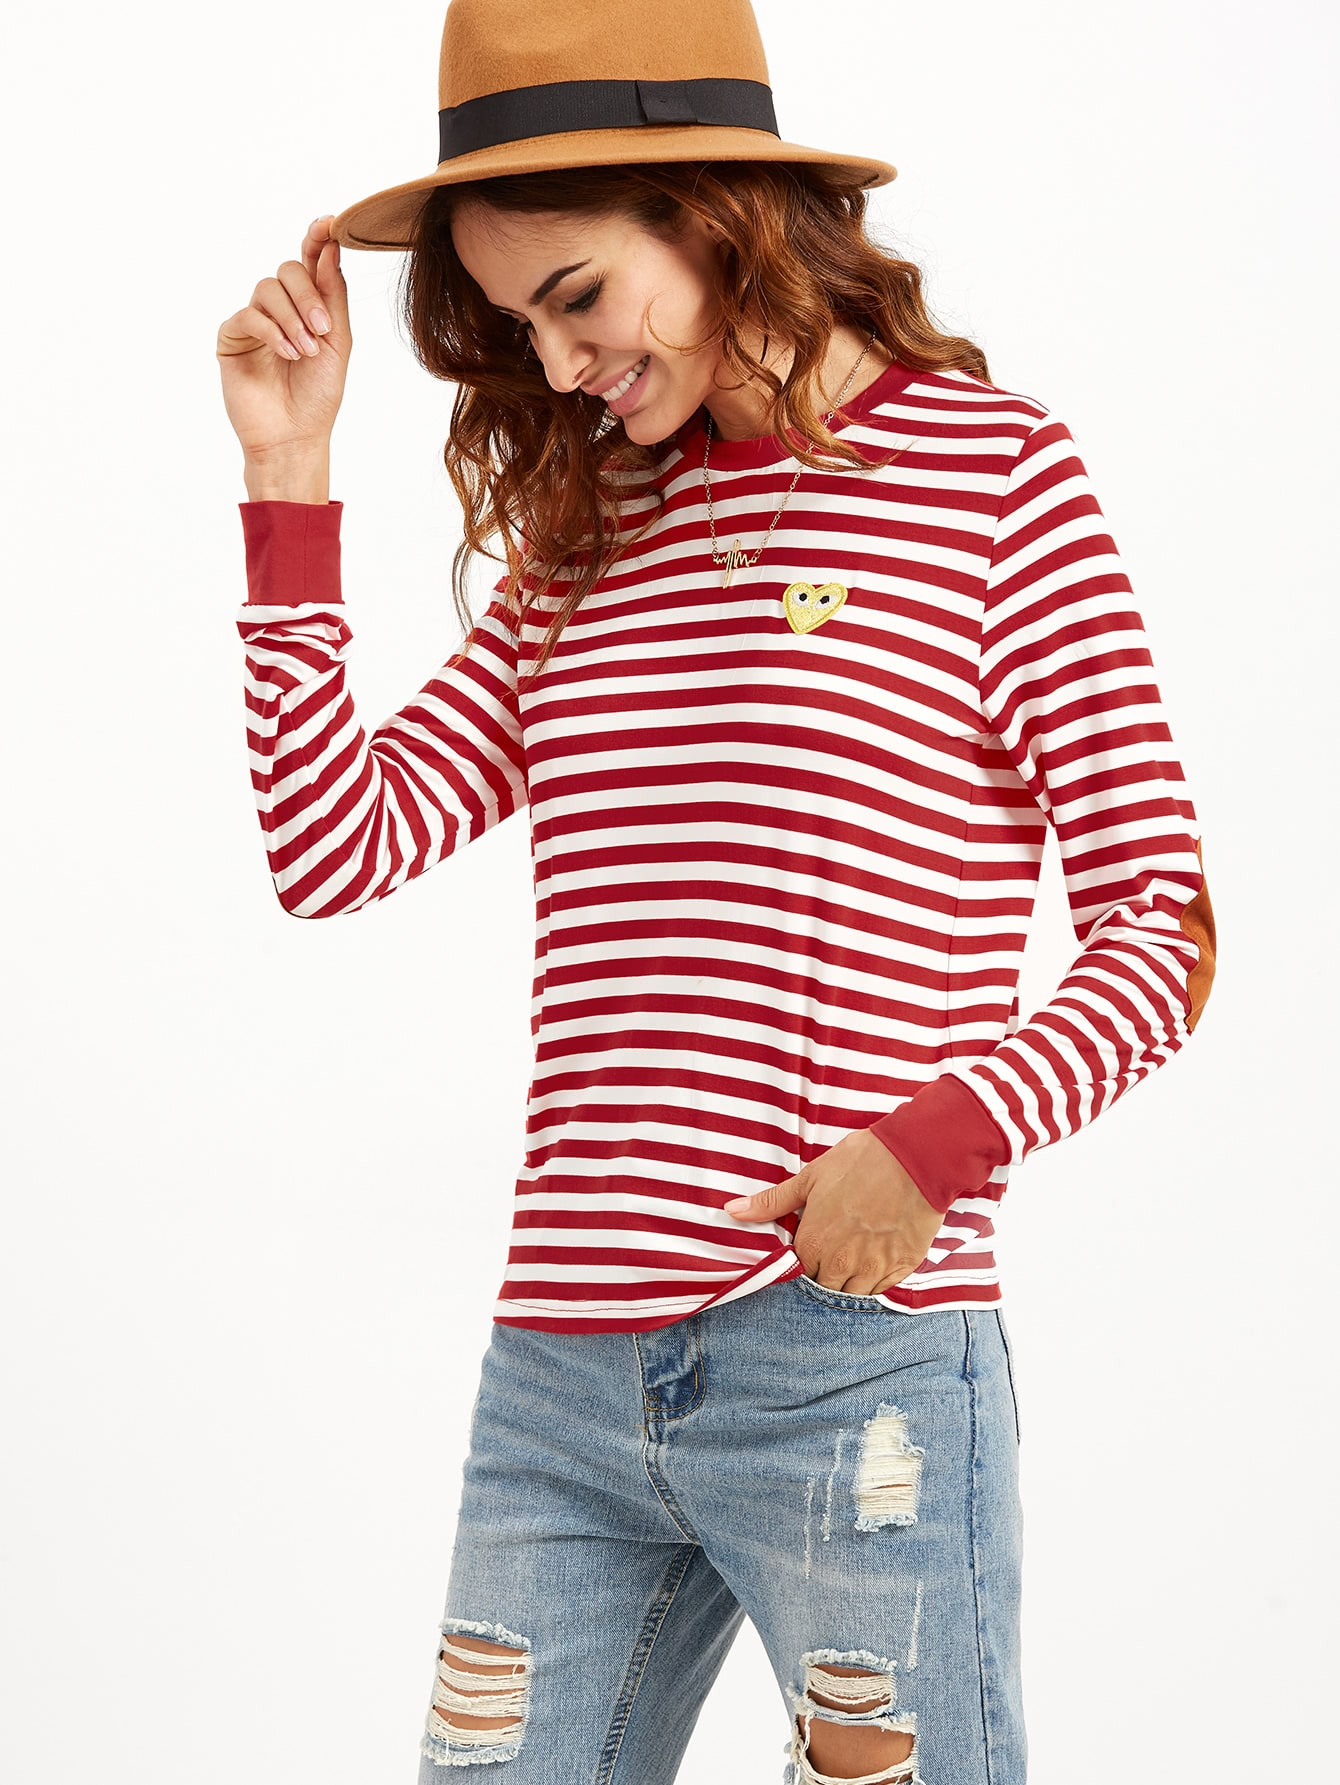 Red Striped Ringer T-shirt With Elbow PatchRed Striped Ringer T-shirt With Elbow Patch<br><br>color: Red<br>size: L,M,S,XS